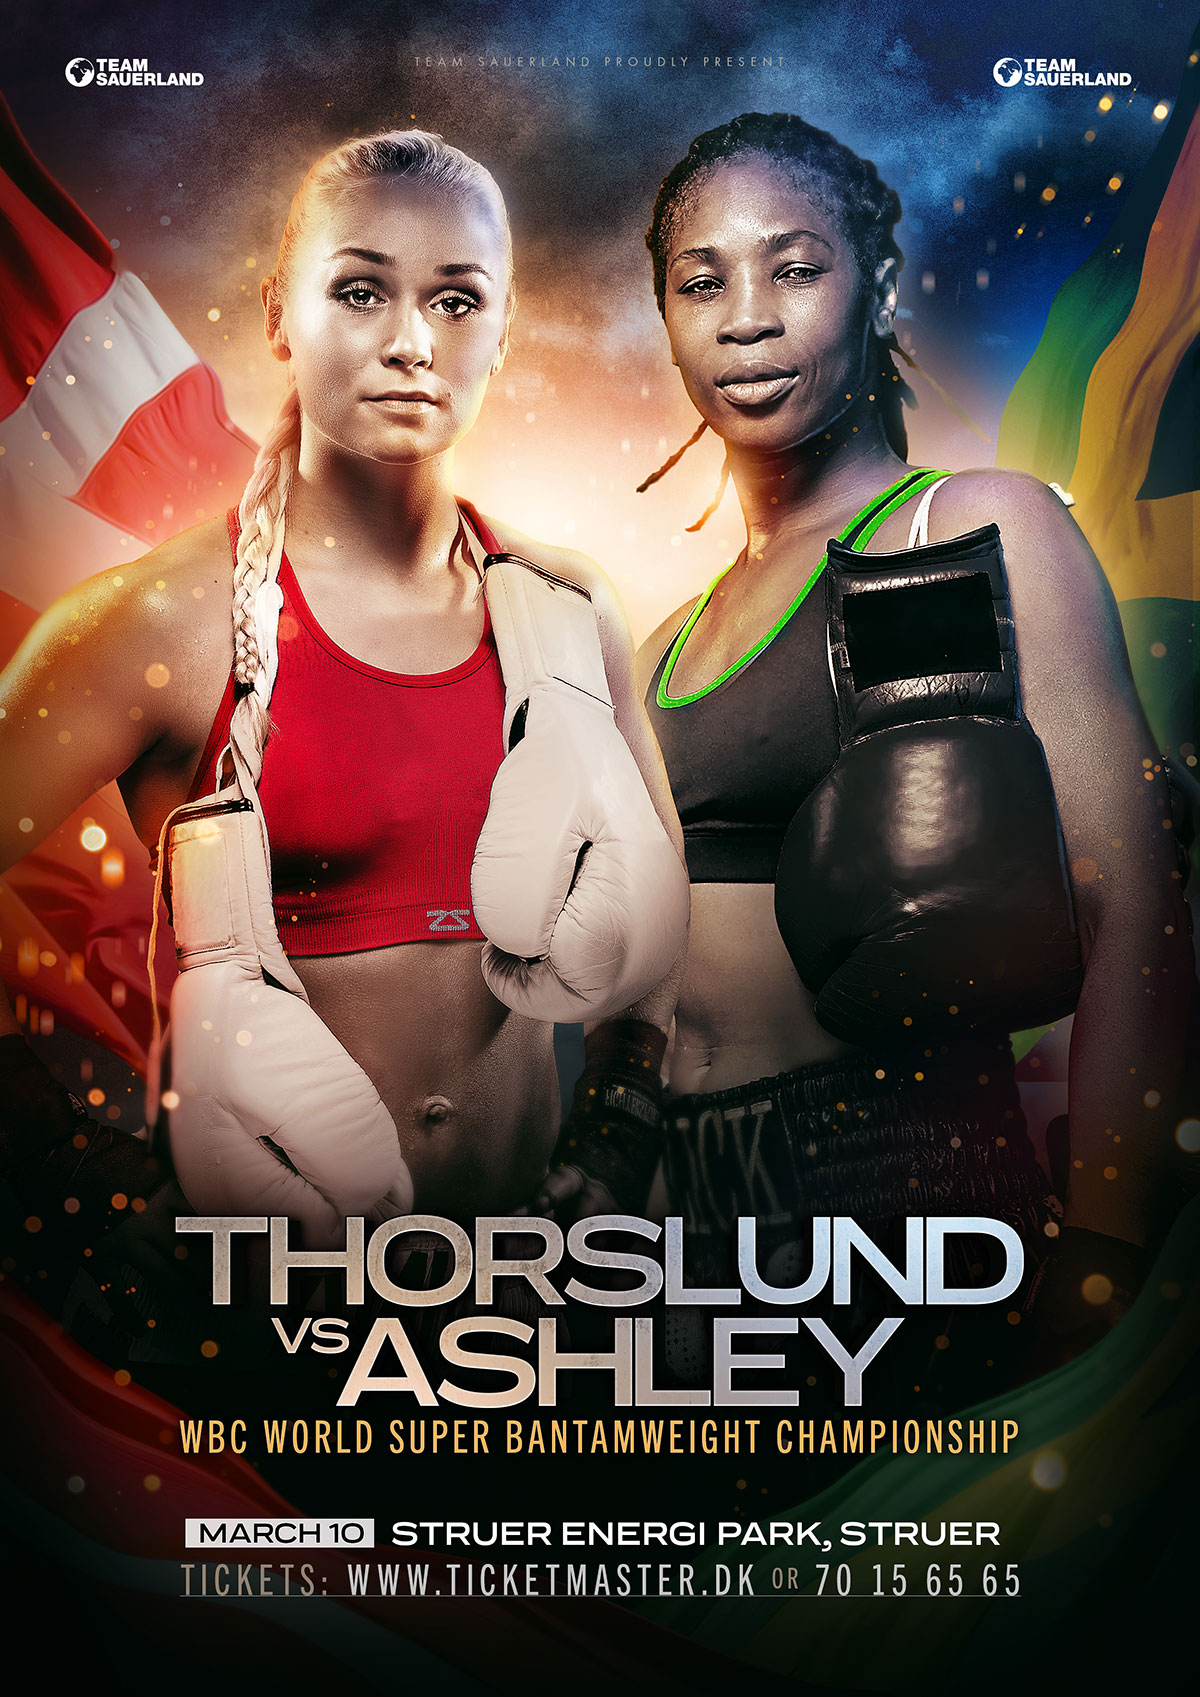 poster for women's boxing contest in Denmark